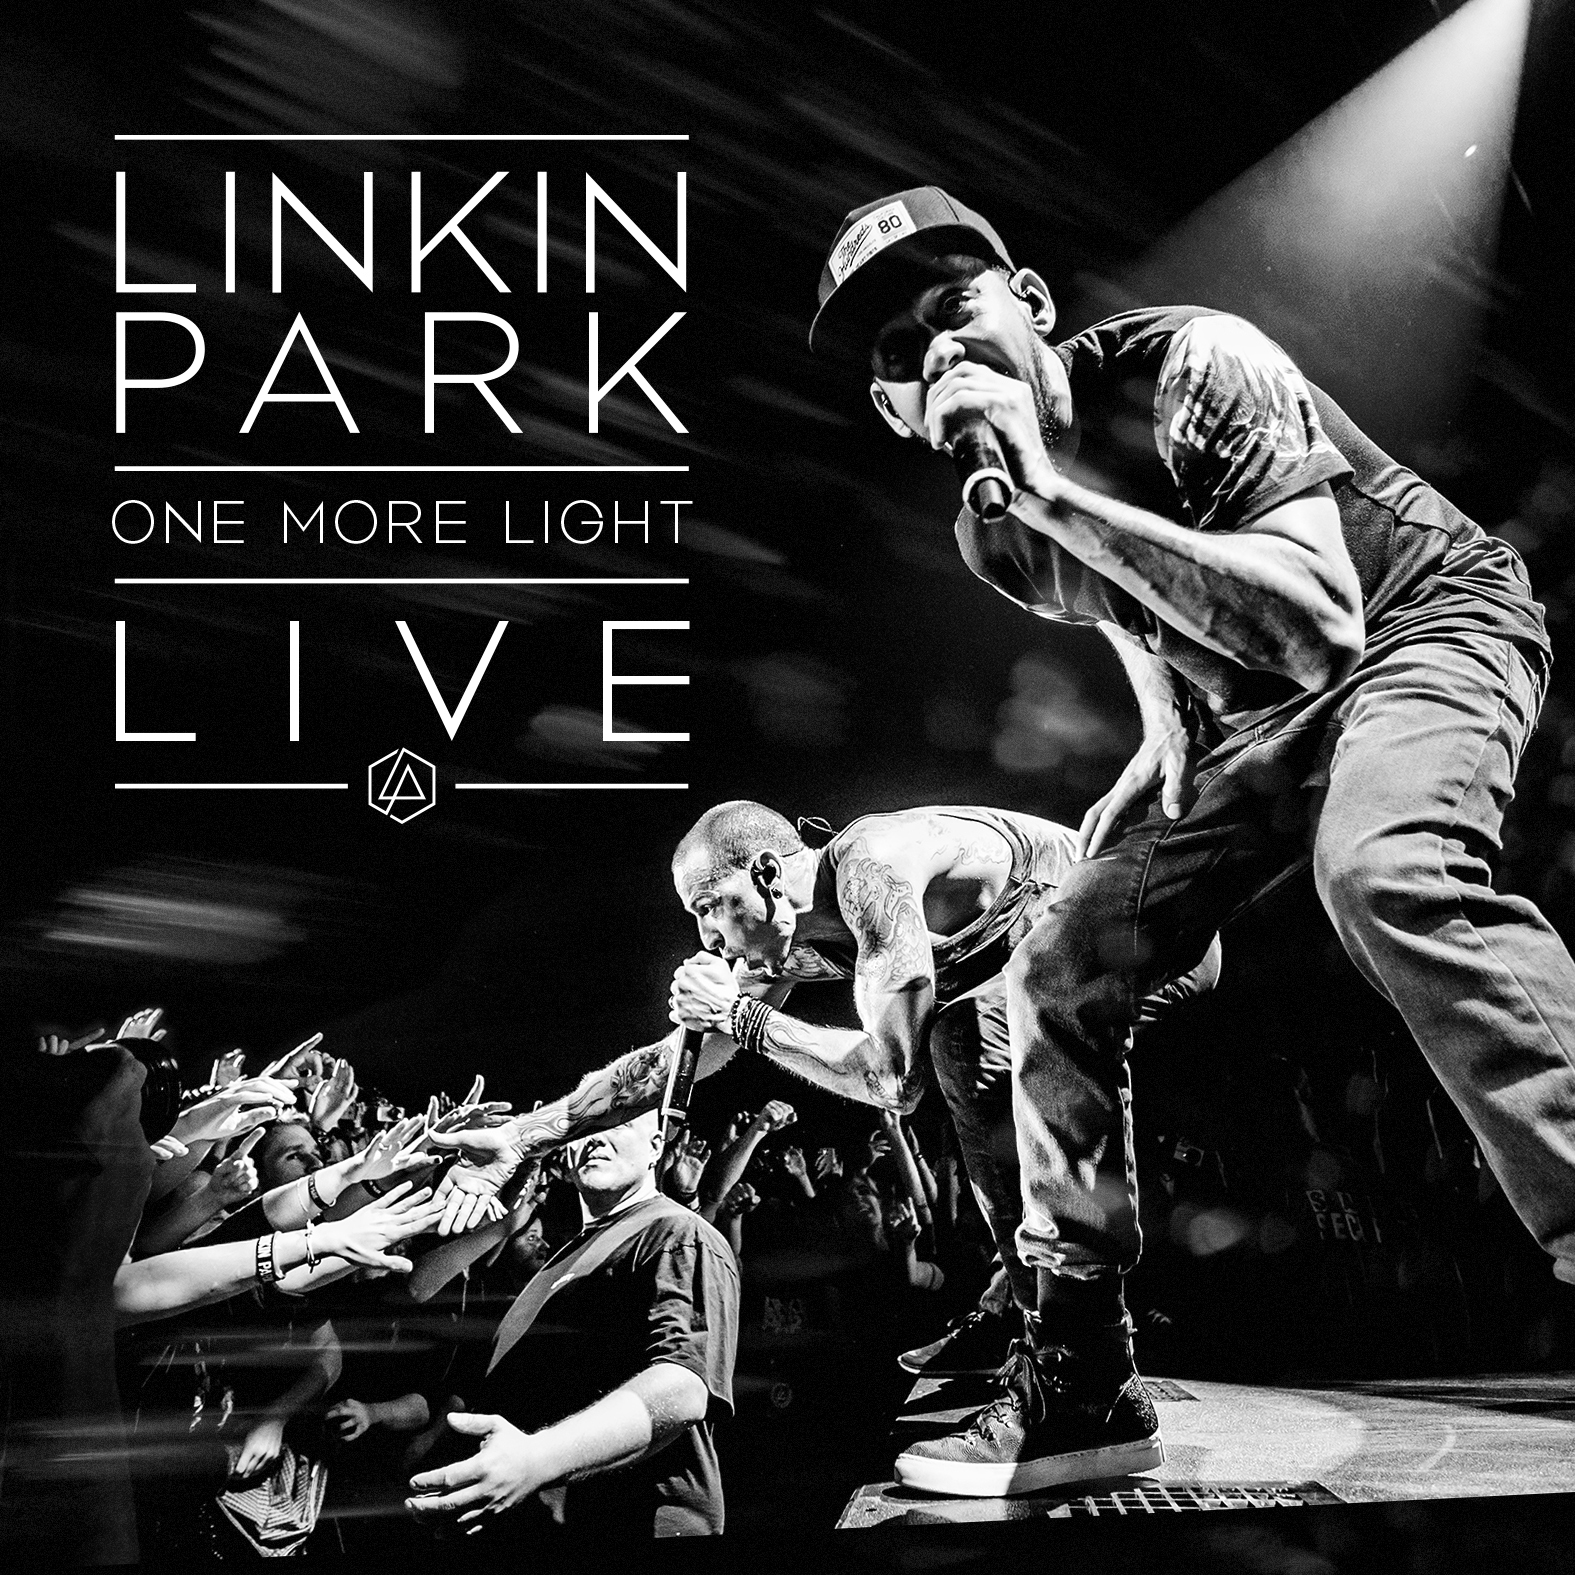 PRE-ORDER ONE MORE LIGHT LIVE